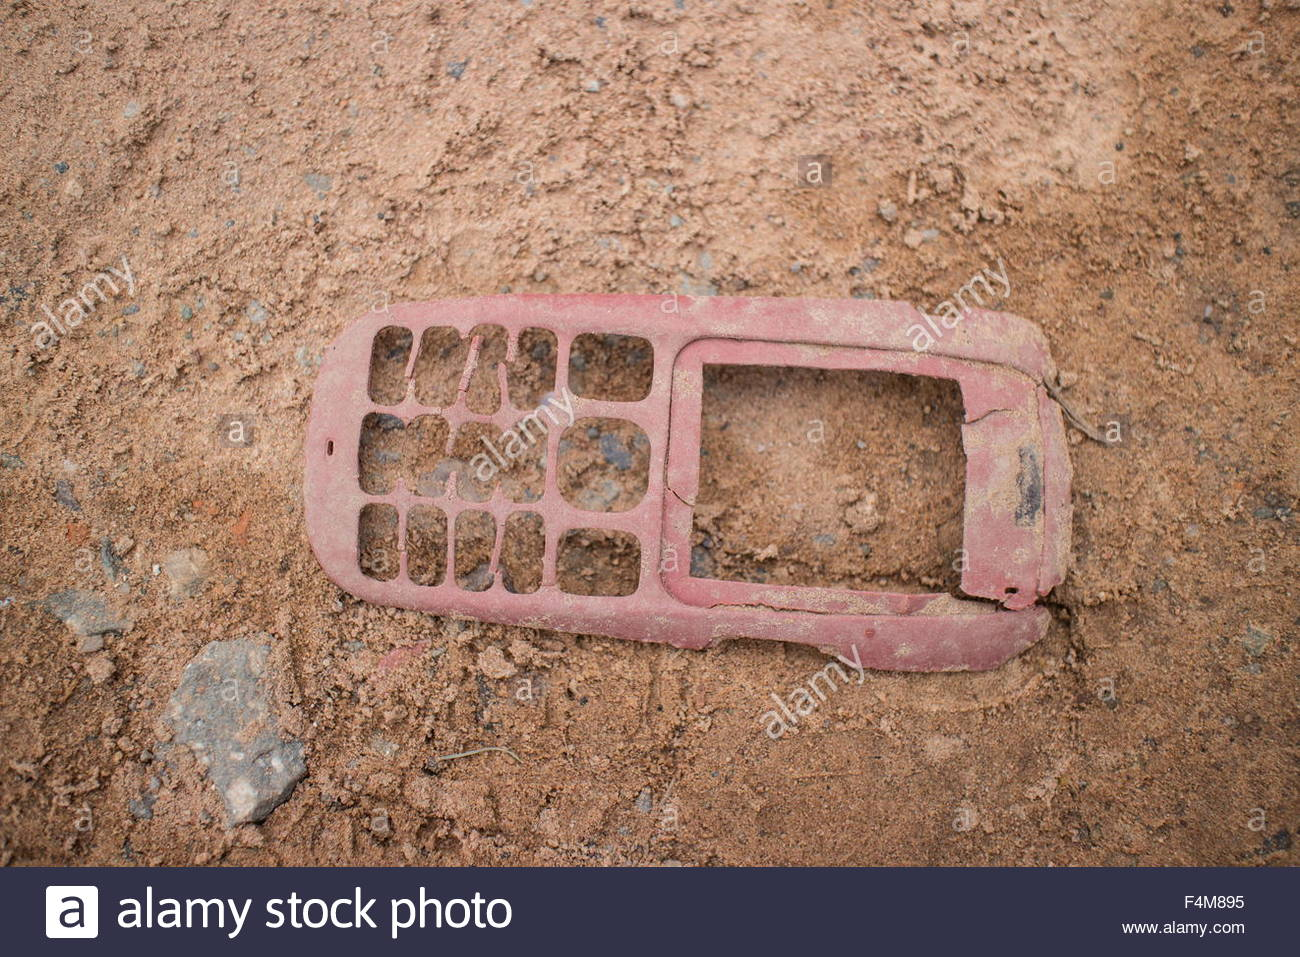 Medium horizontal shot of a dusty, broken older style mobile phone face lying in the dust at the side of the road. - Stock Image